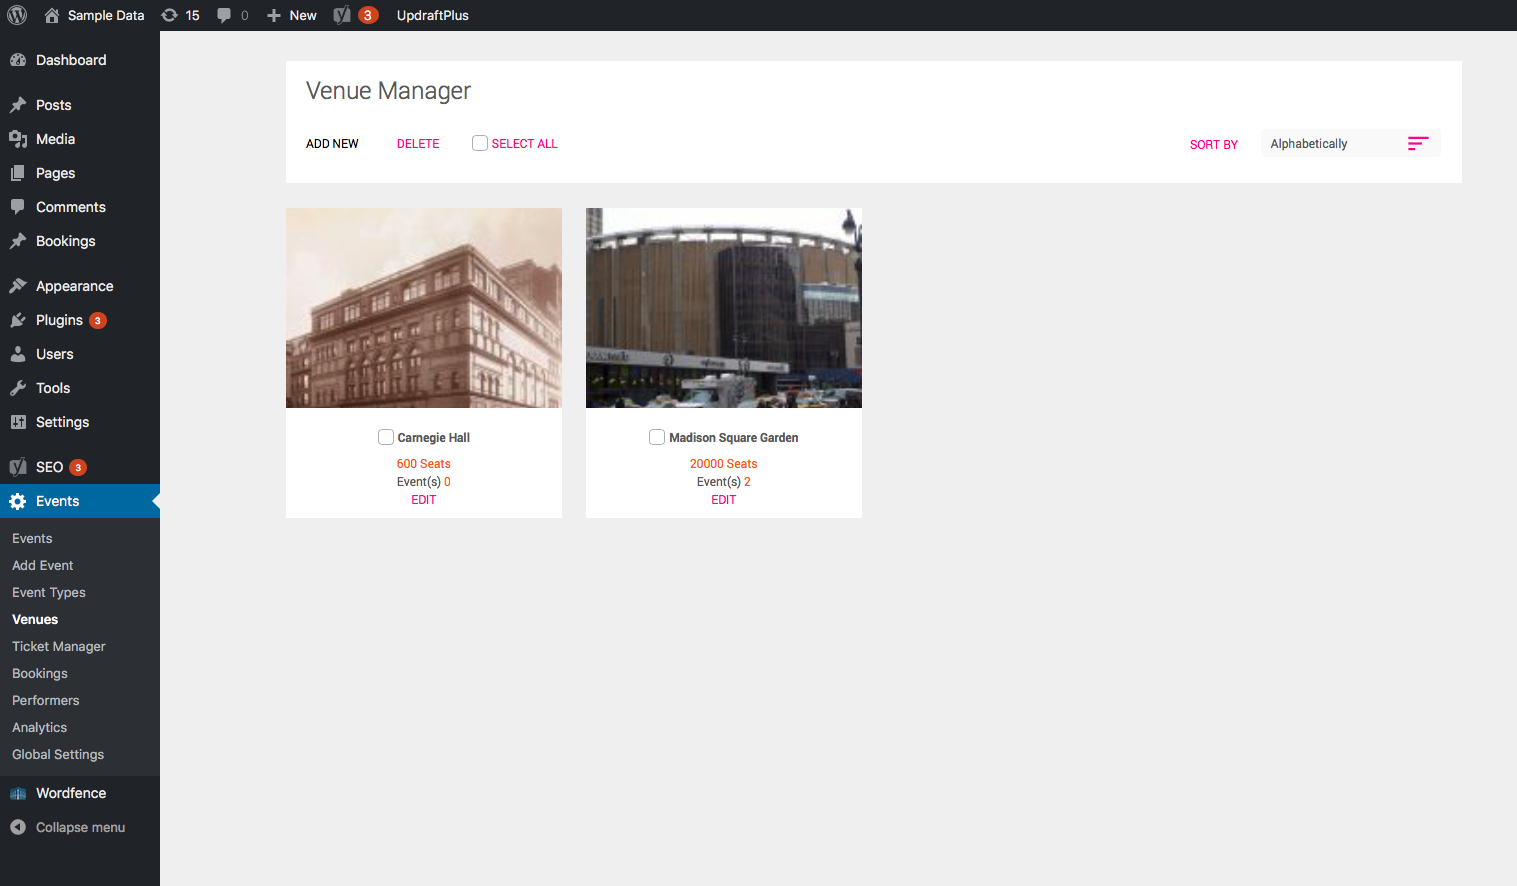 Venues Manager - Dashboard